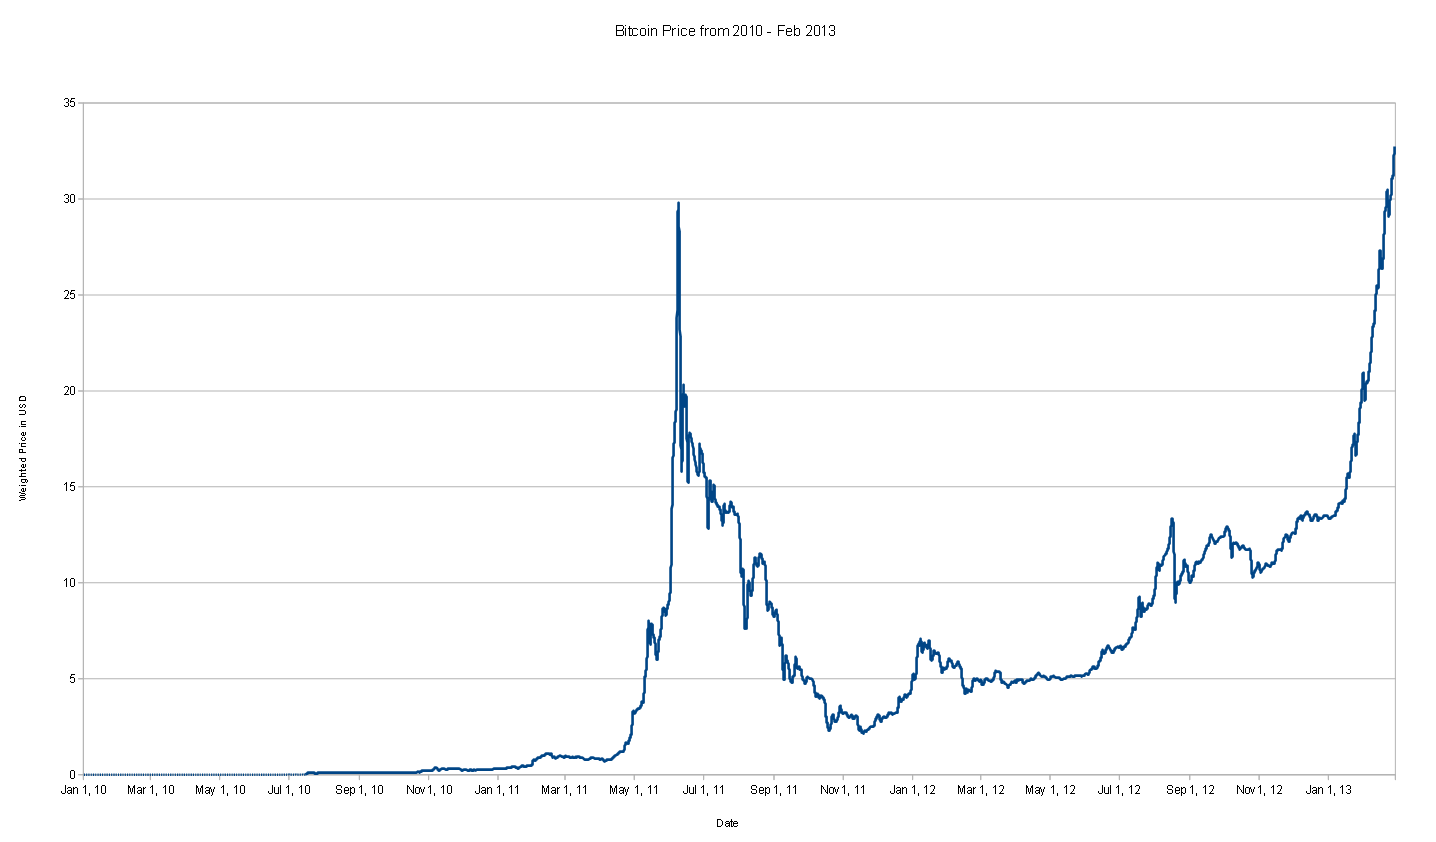 Bitcoins Price From 2010 To February 2013